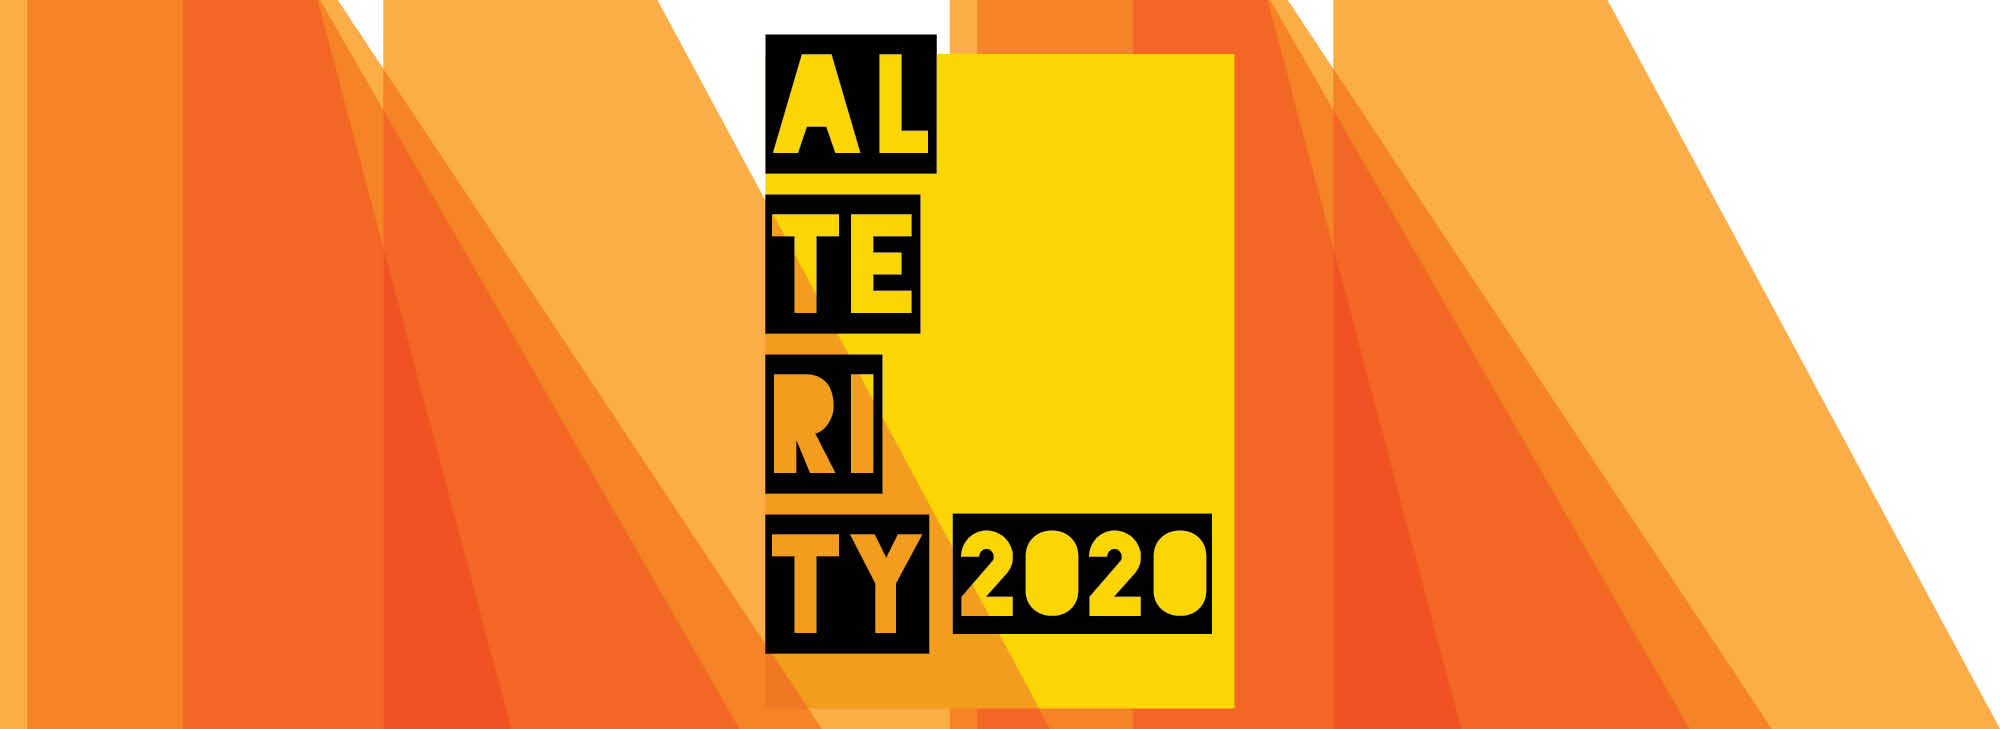 Ombre hues of orange are a backdrop for the text ALTERITY 2020